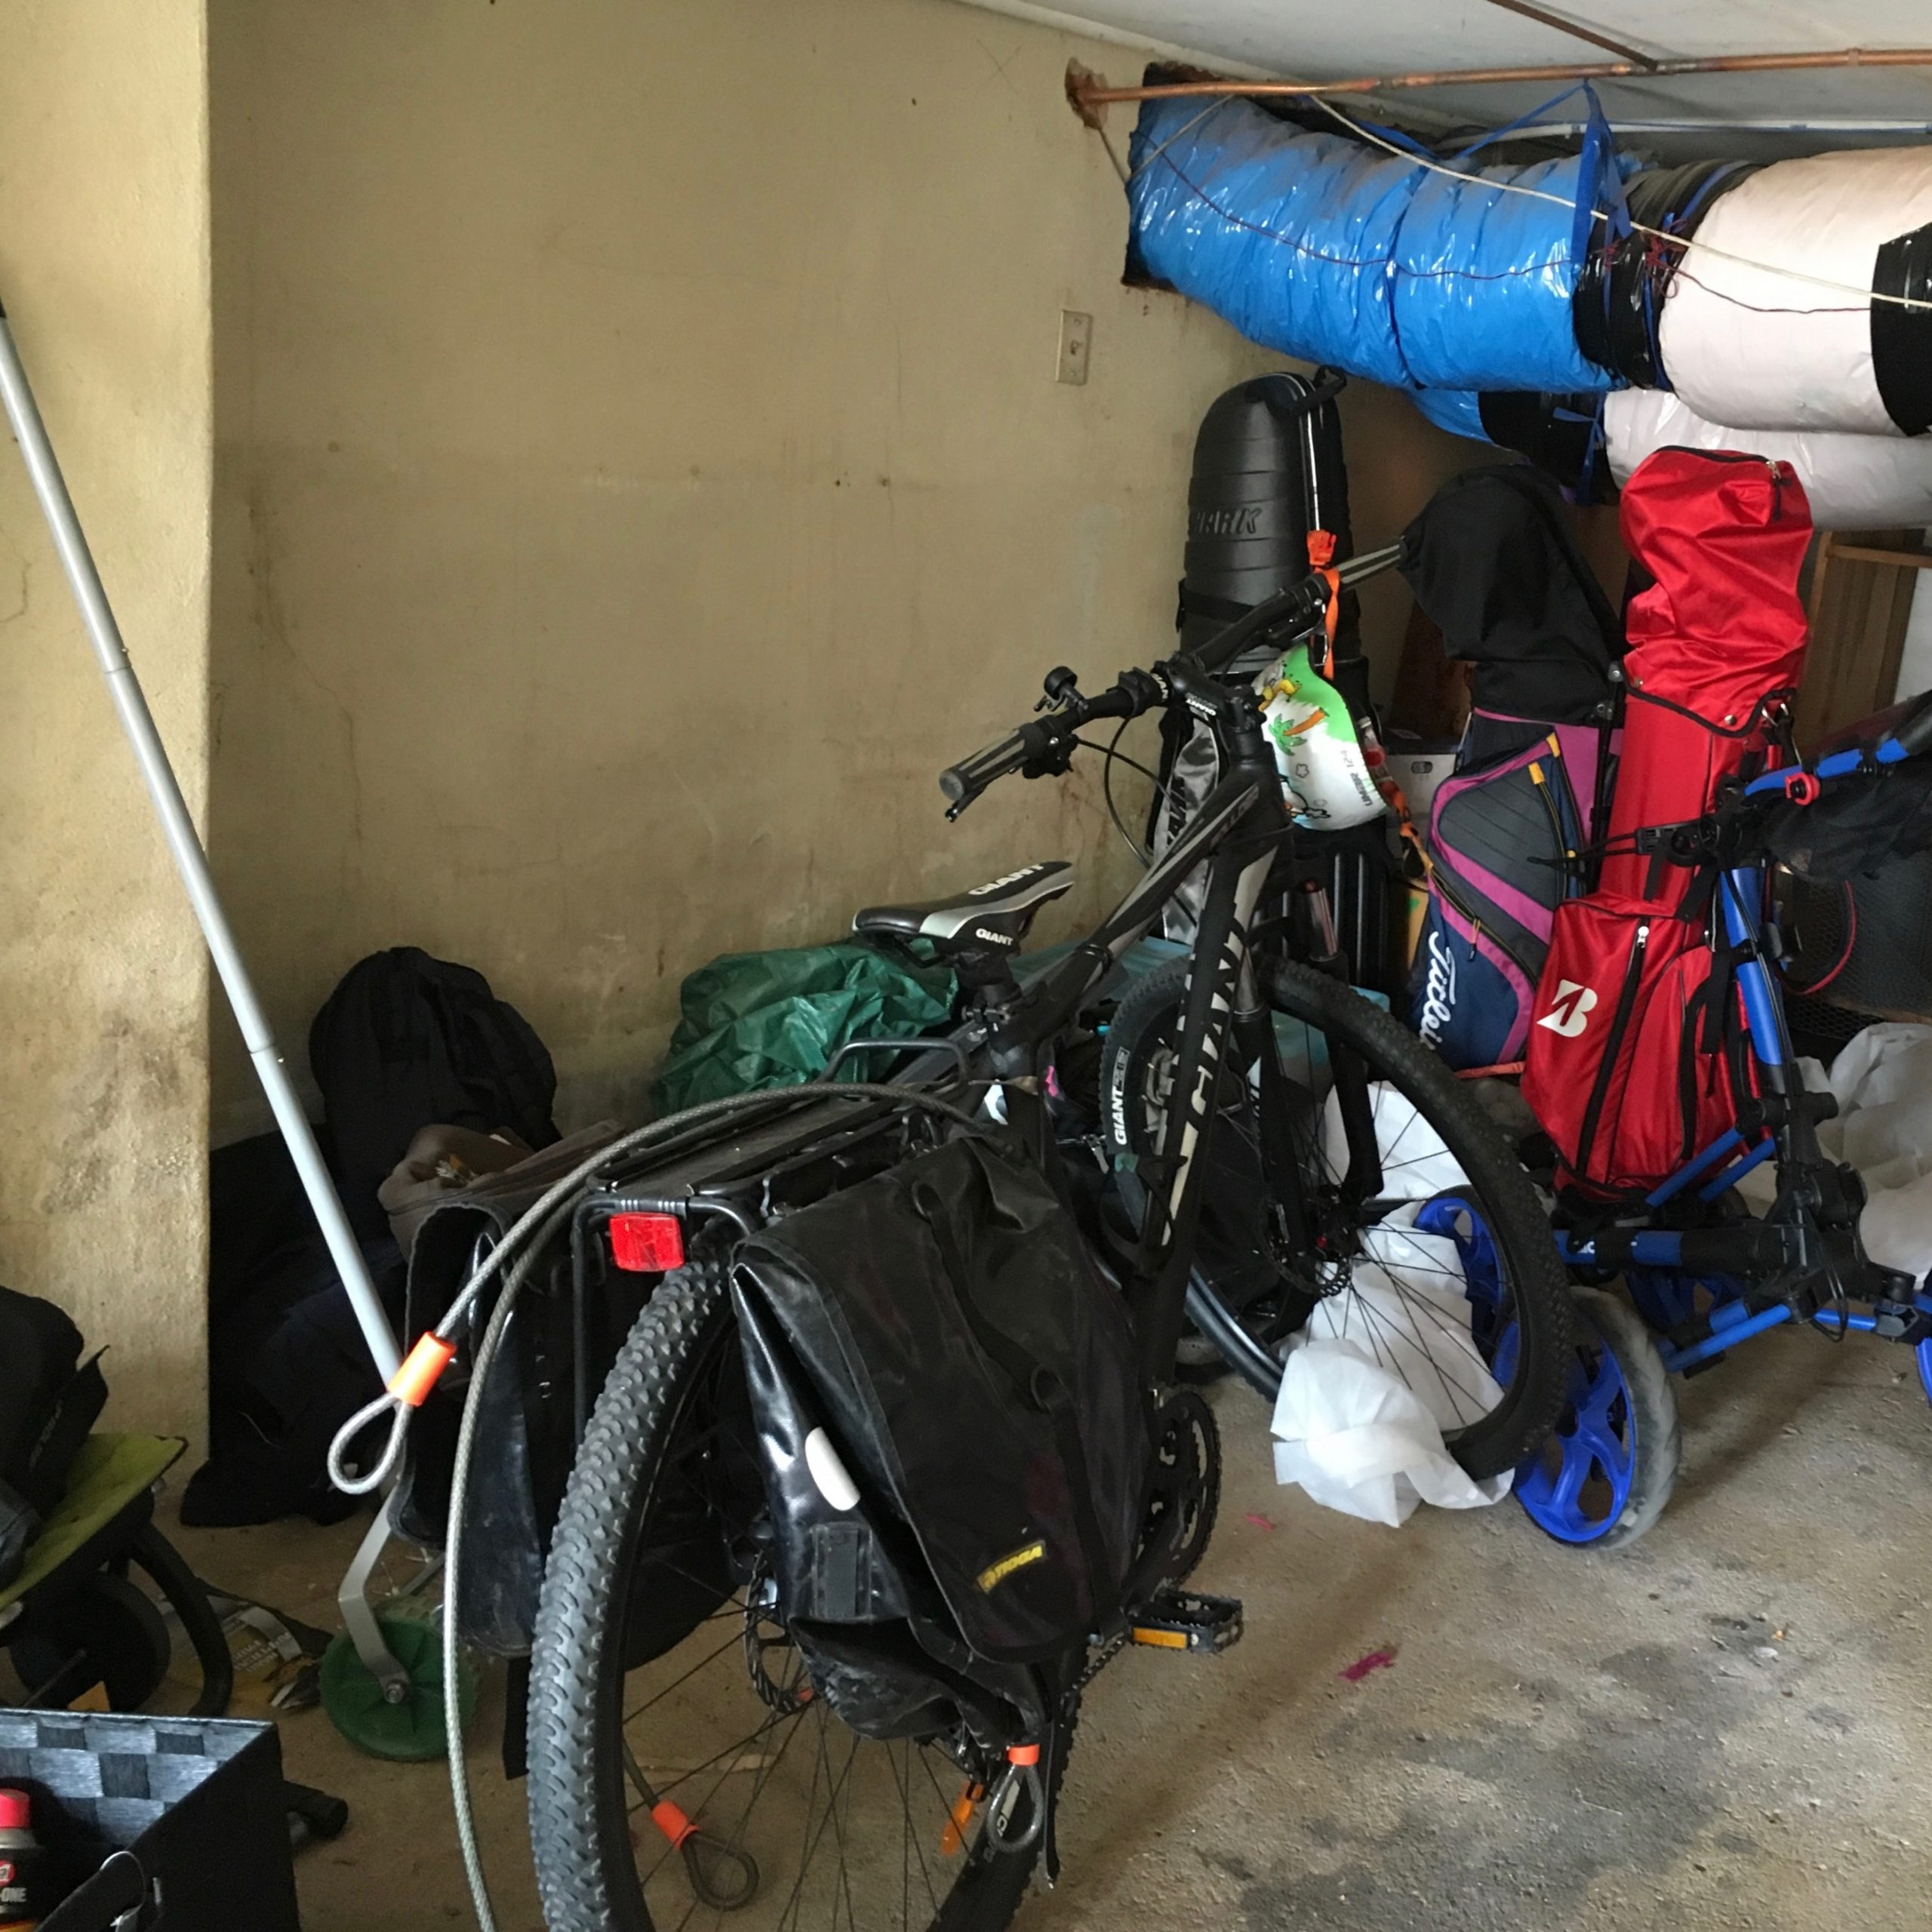 Before Bike and Garage Organisation - The Organising Bee Canberra